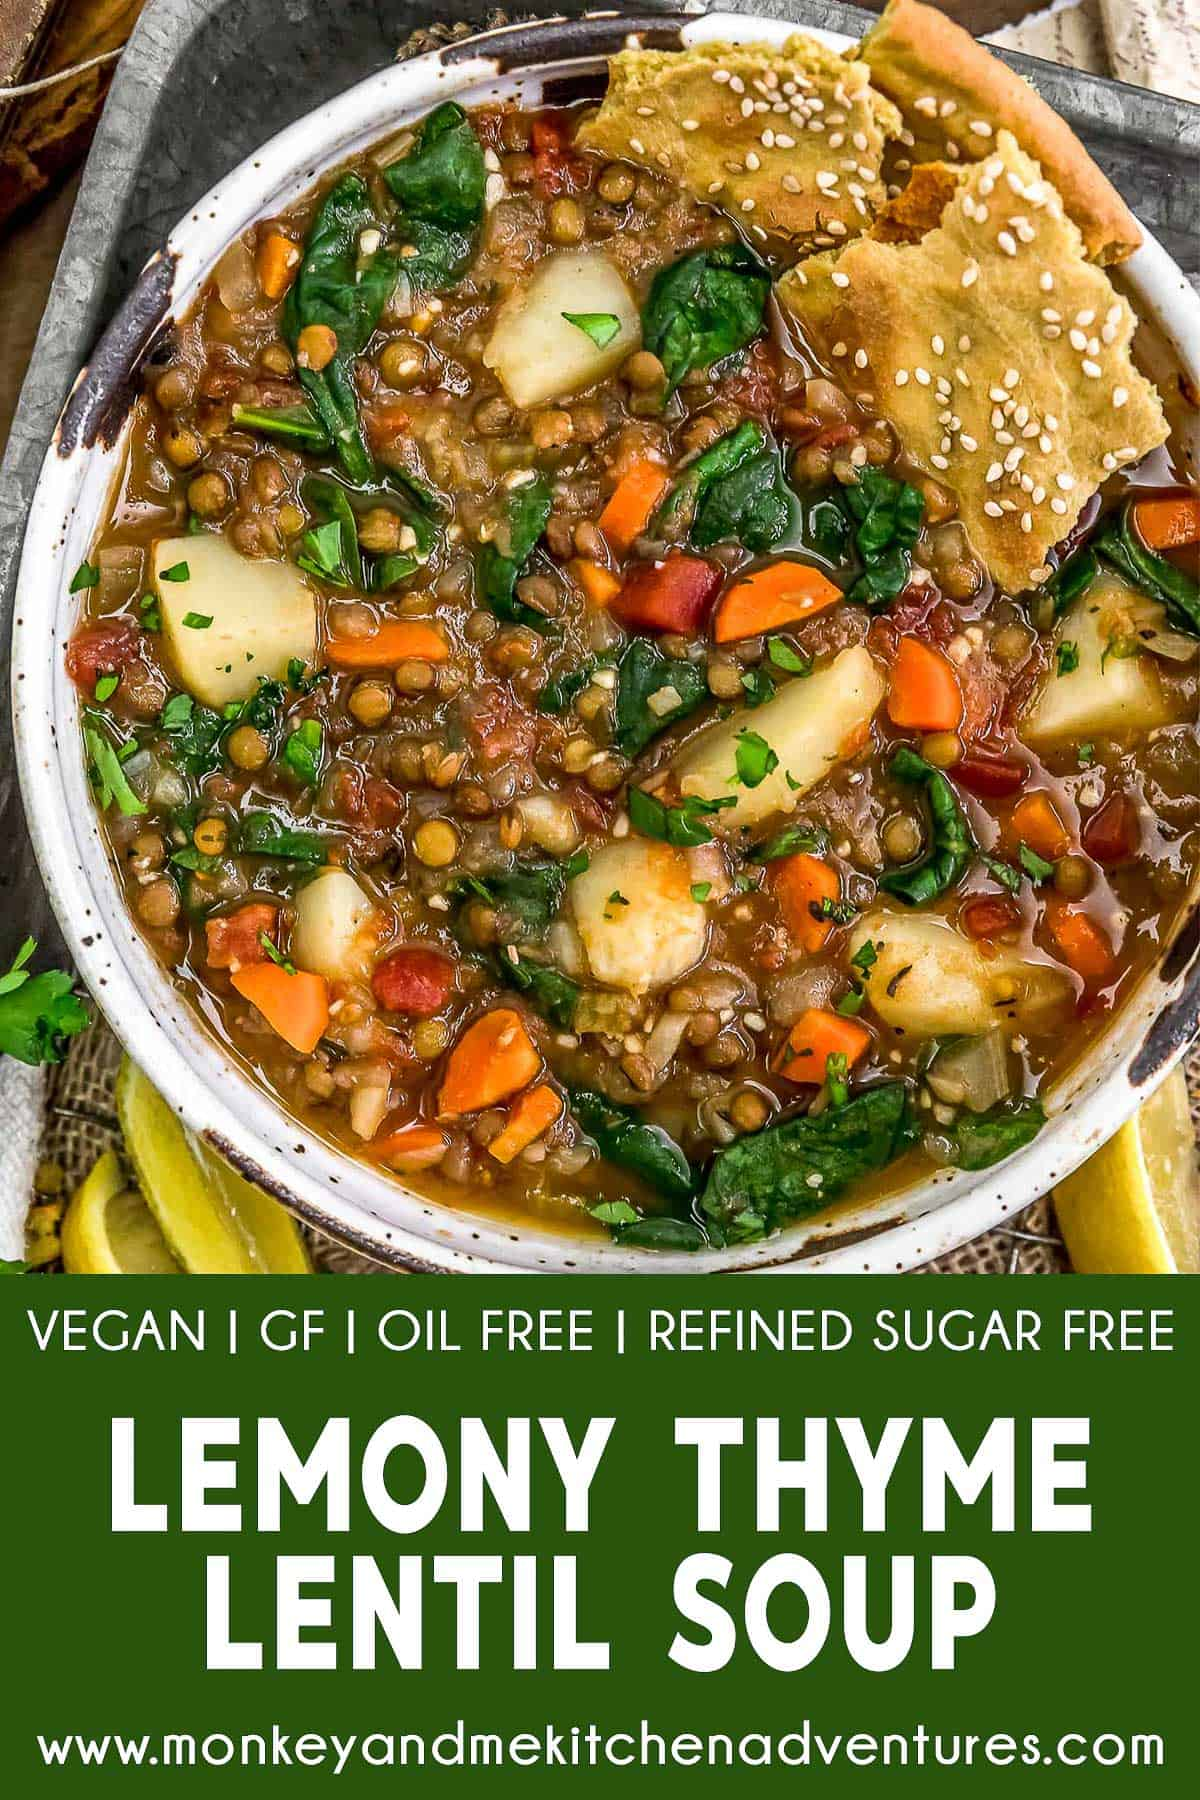 Lemony Thyme Lentil Soup with text description